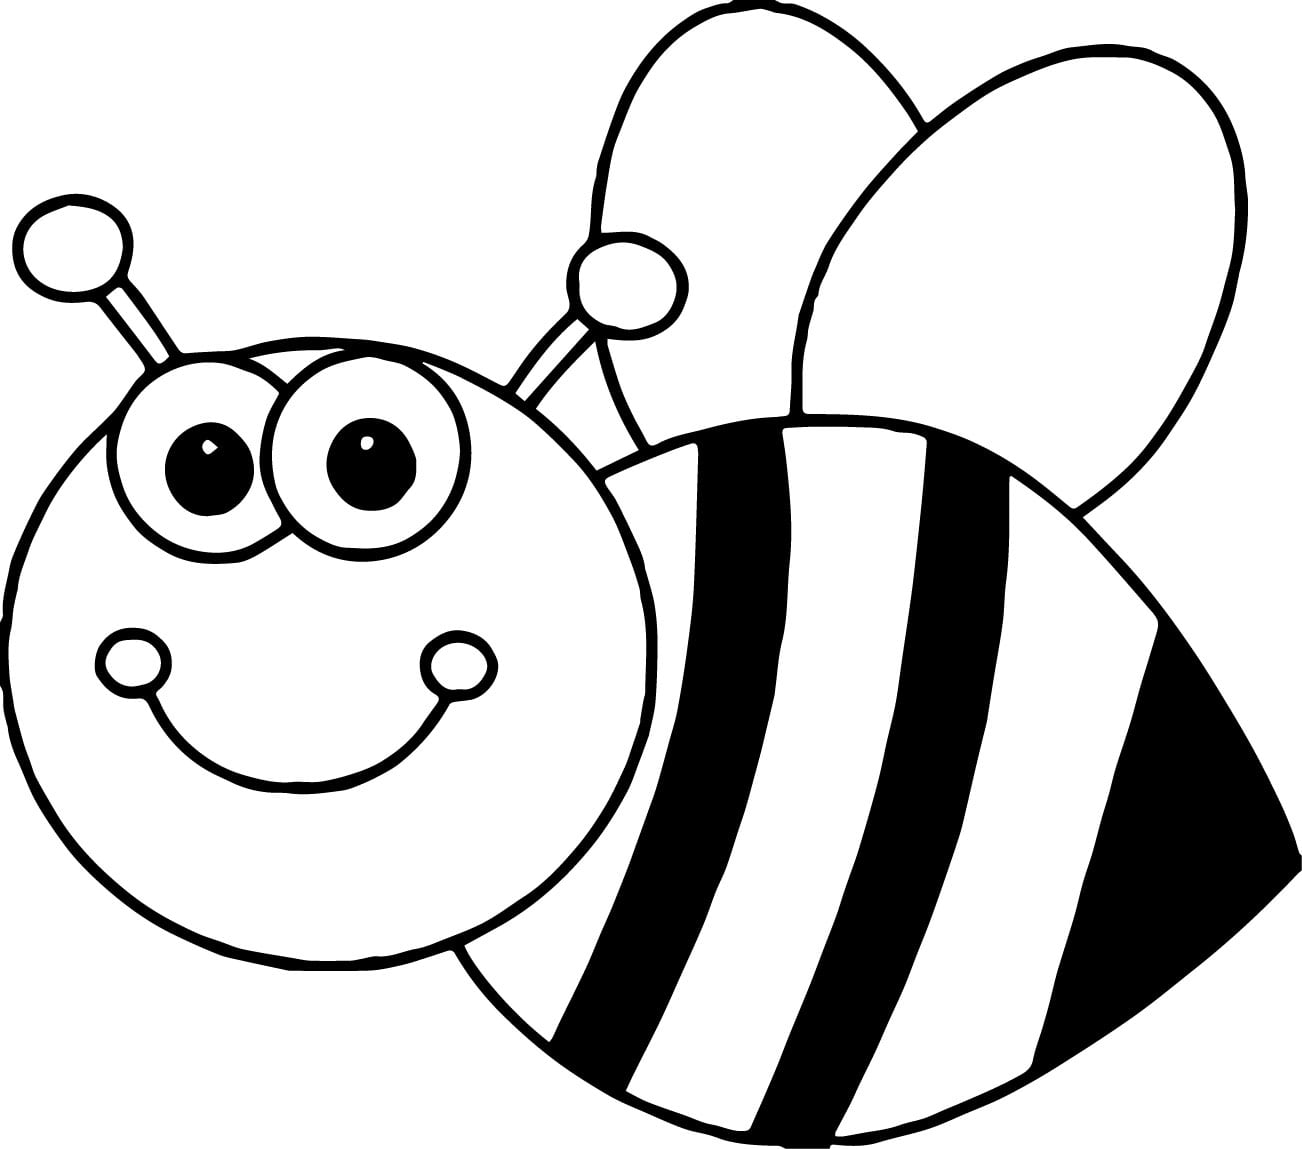 Honey Bee Coloring Pages 6 12228 In